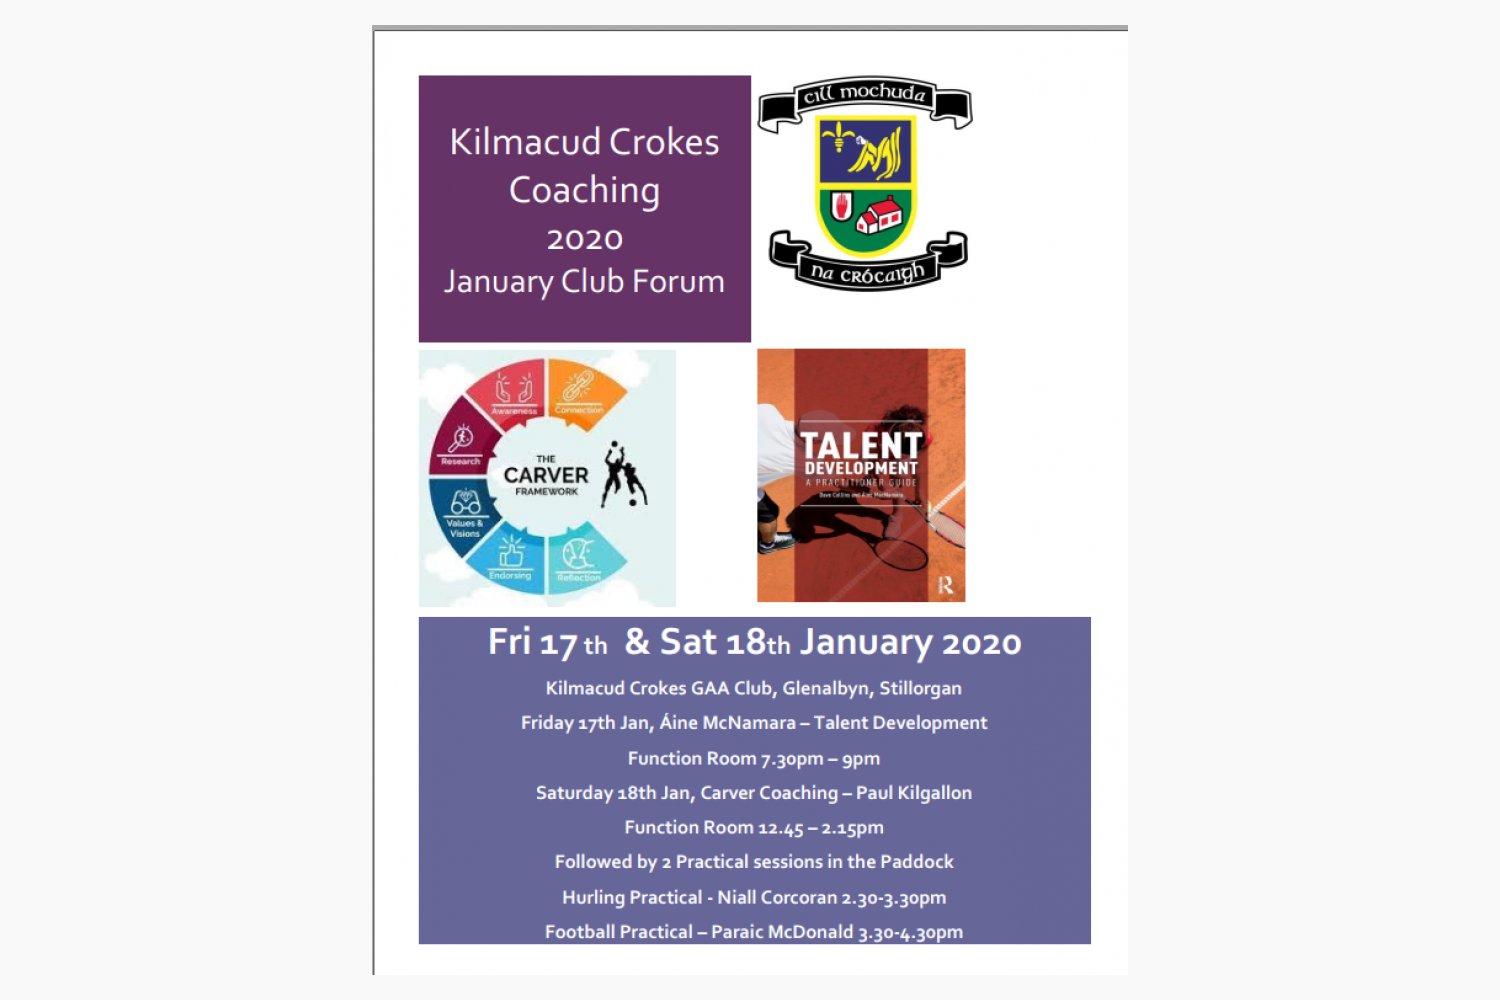 Kilmacud Crokes Coaching 2020 17th / 18th January